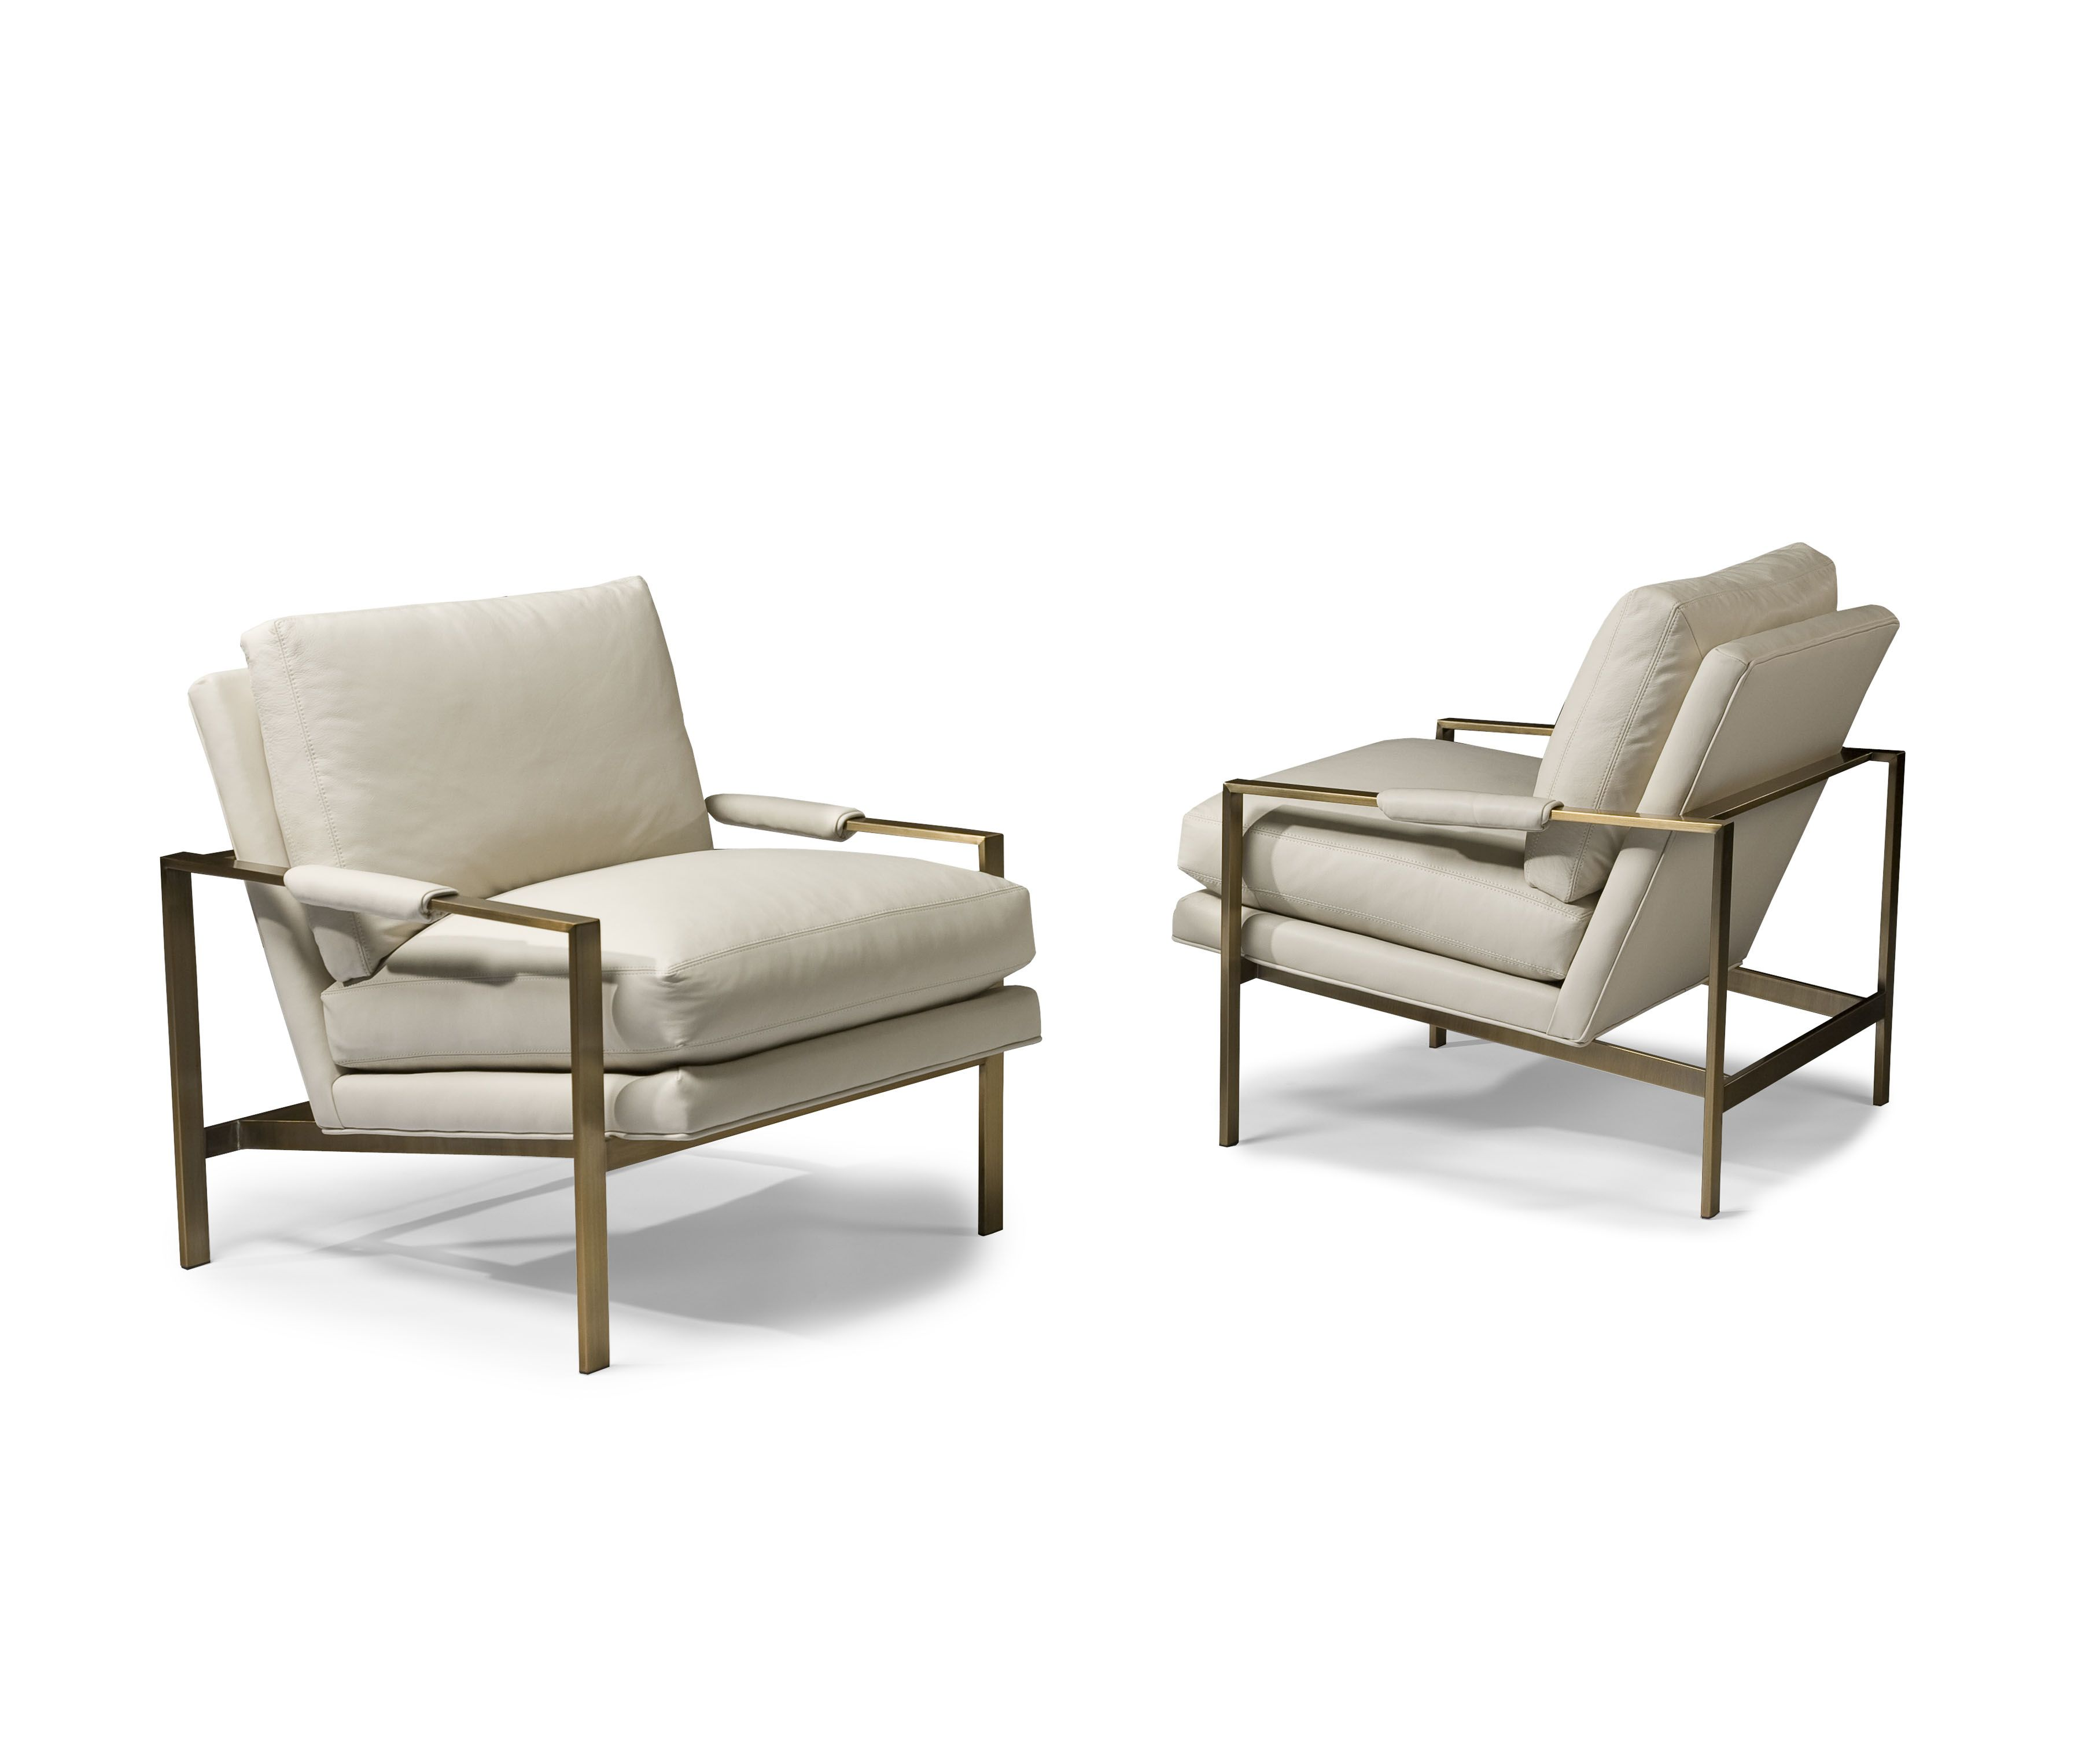 Design Classic Lounge Chair By Milo Baughman In New Brushed Bronze Finish